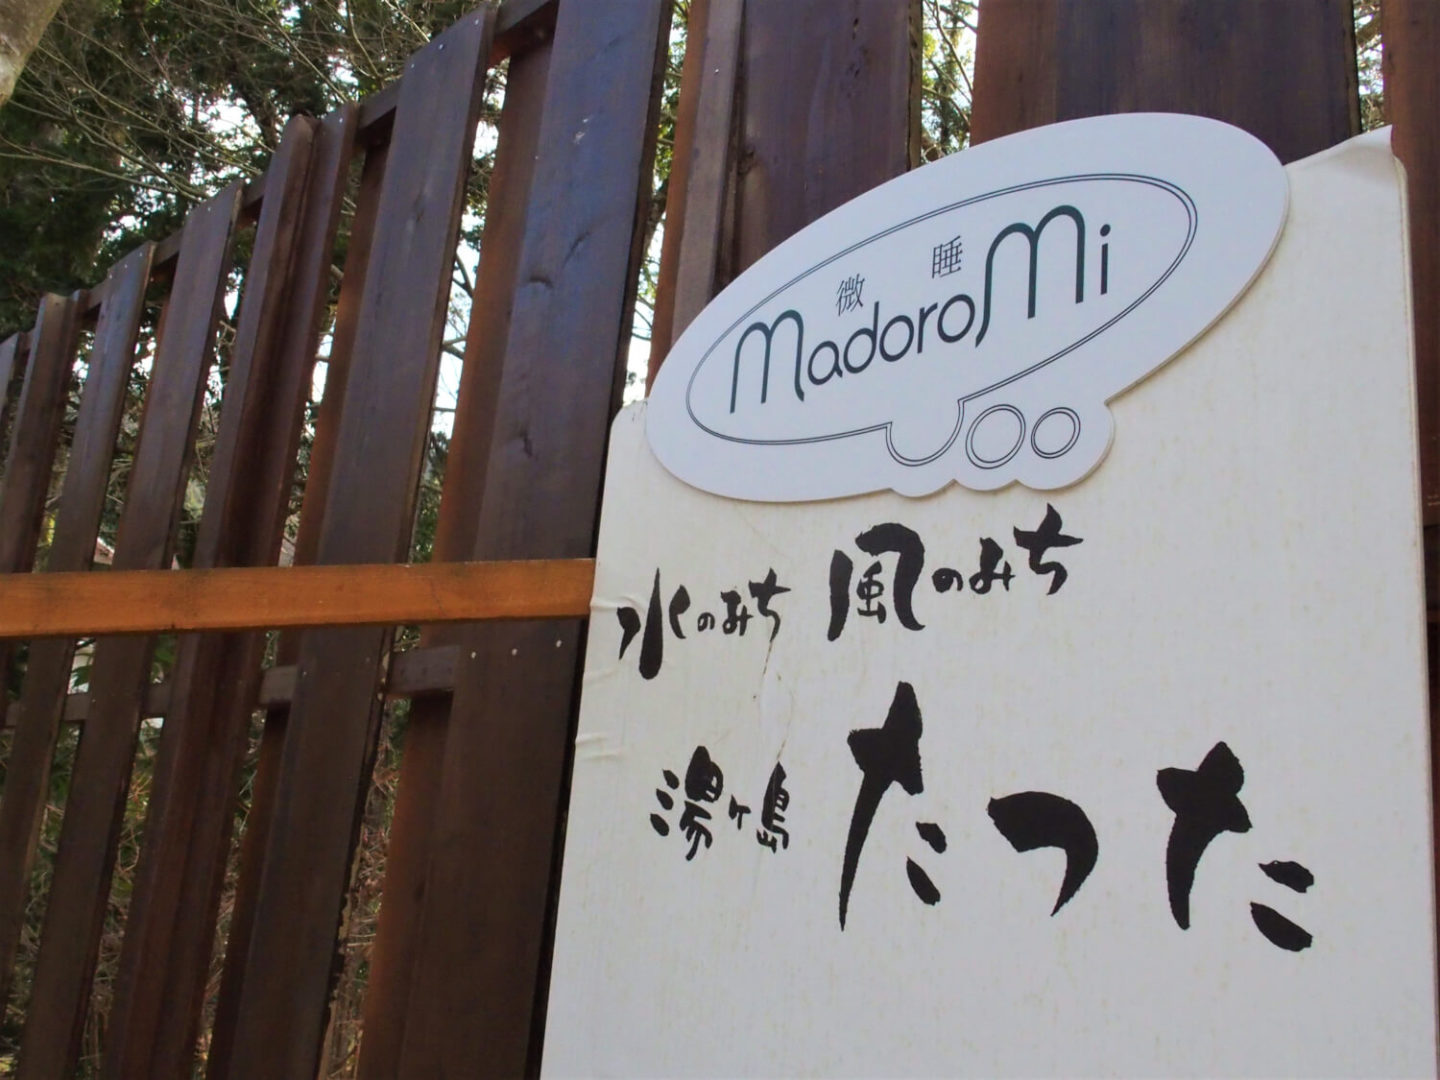 A sign outside the MadoroMi cafe